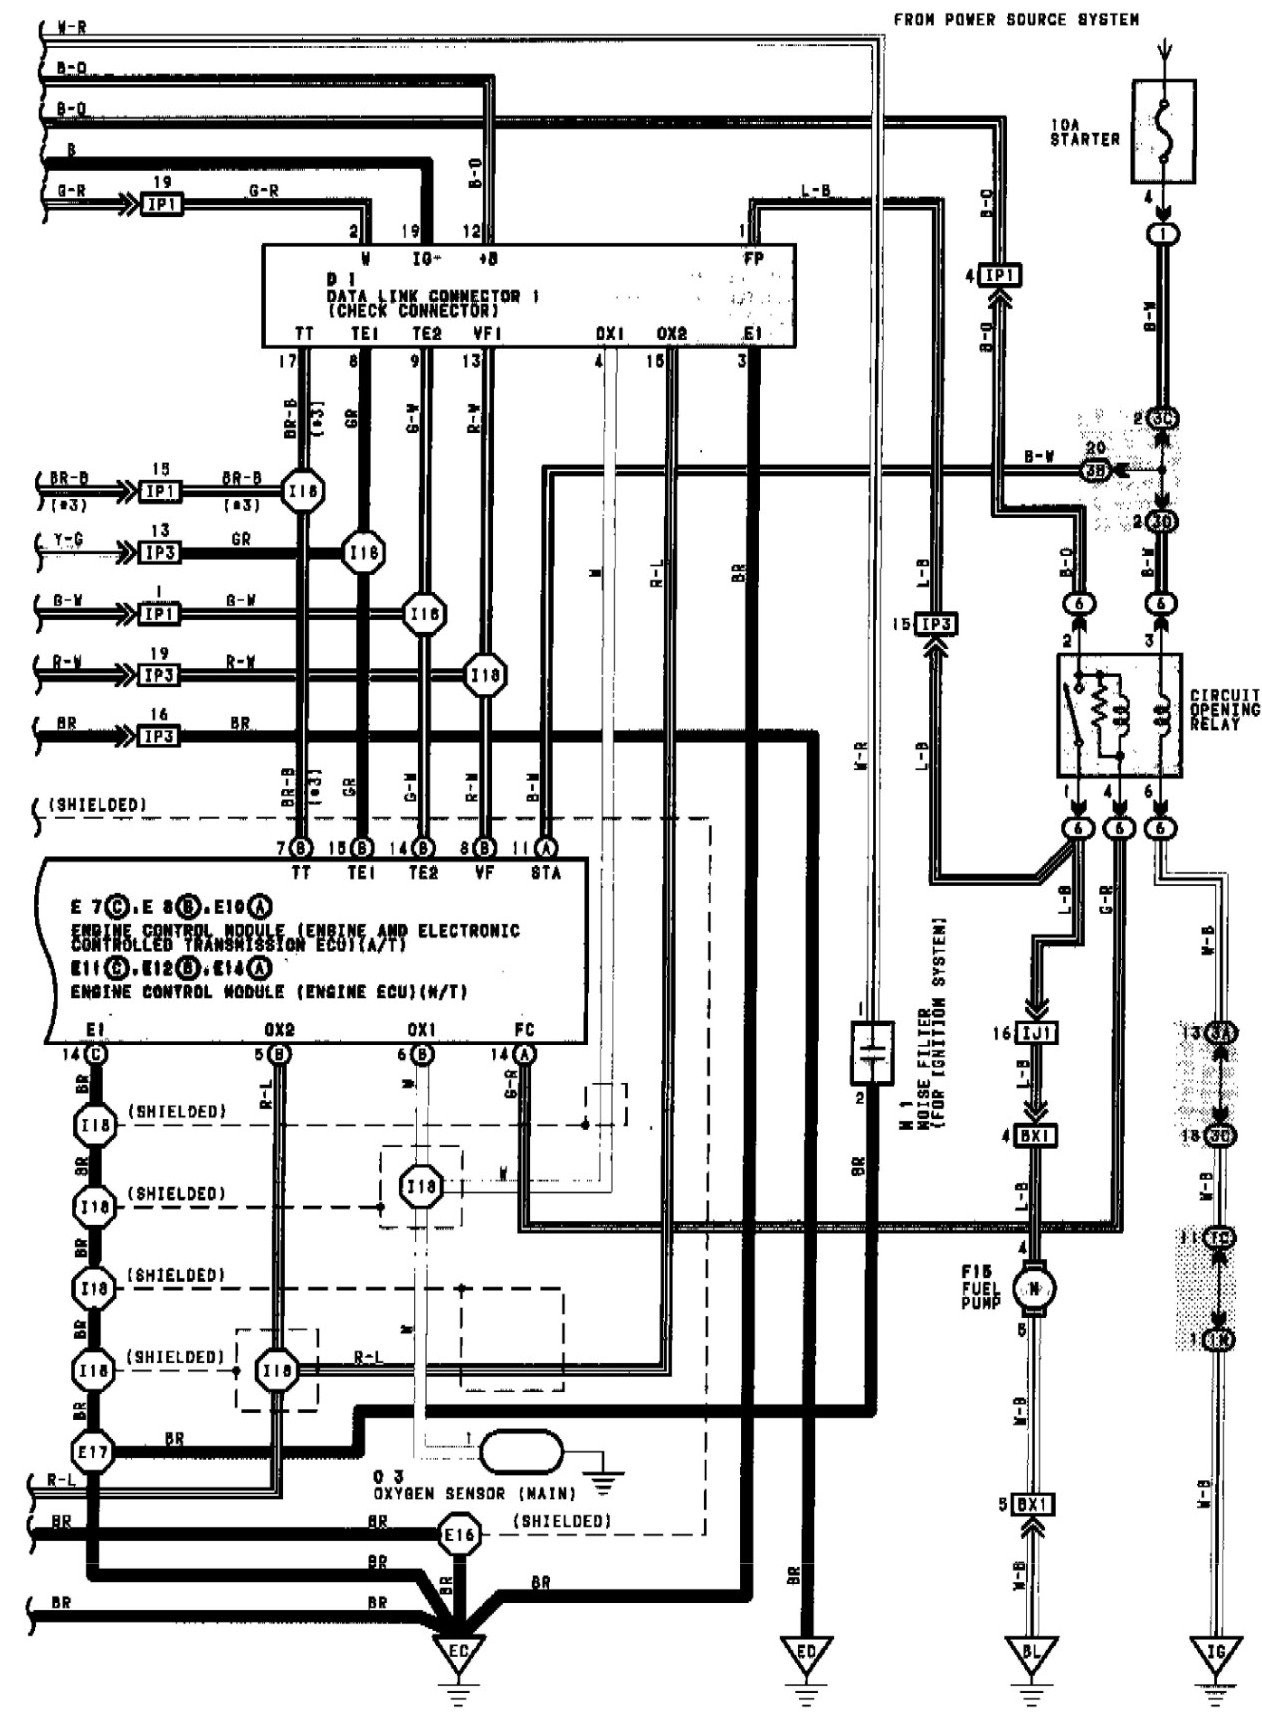 2011 camry wiring diagram